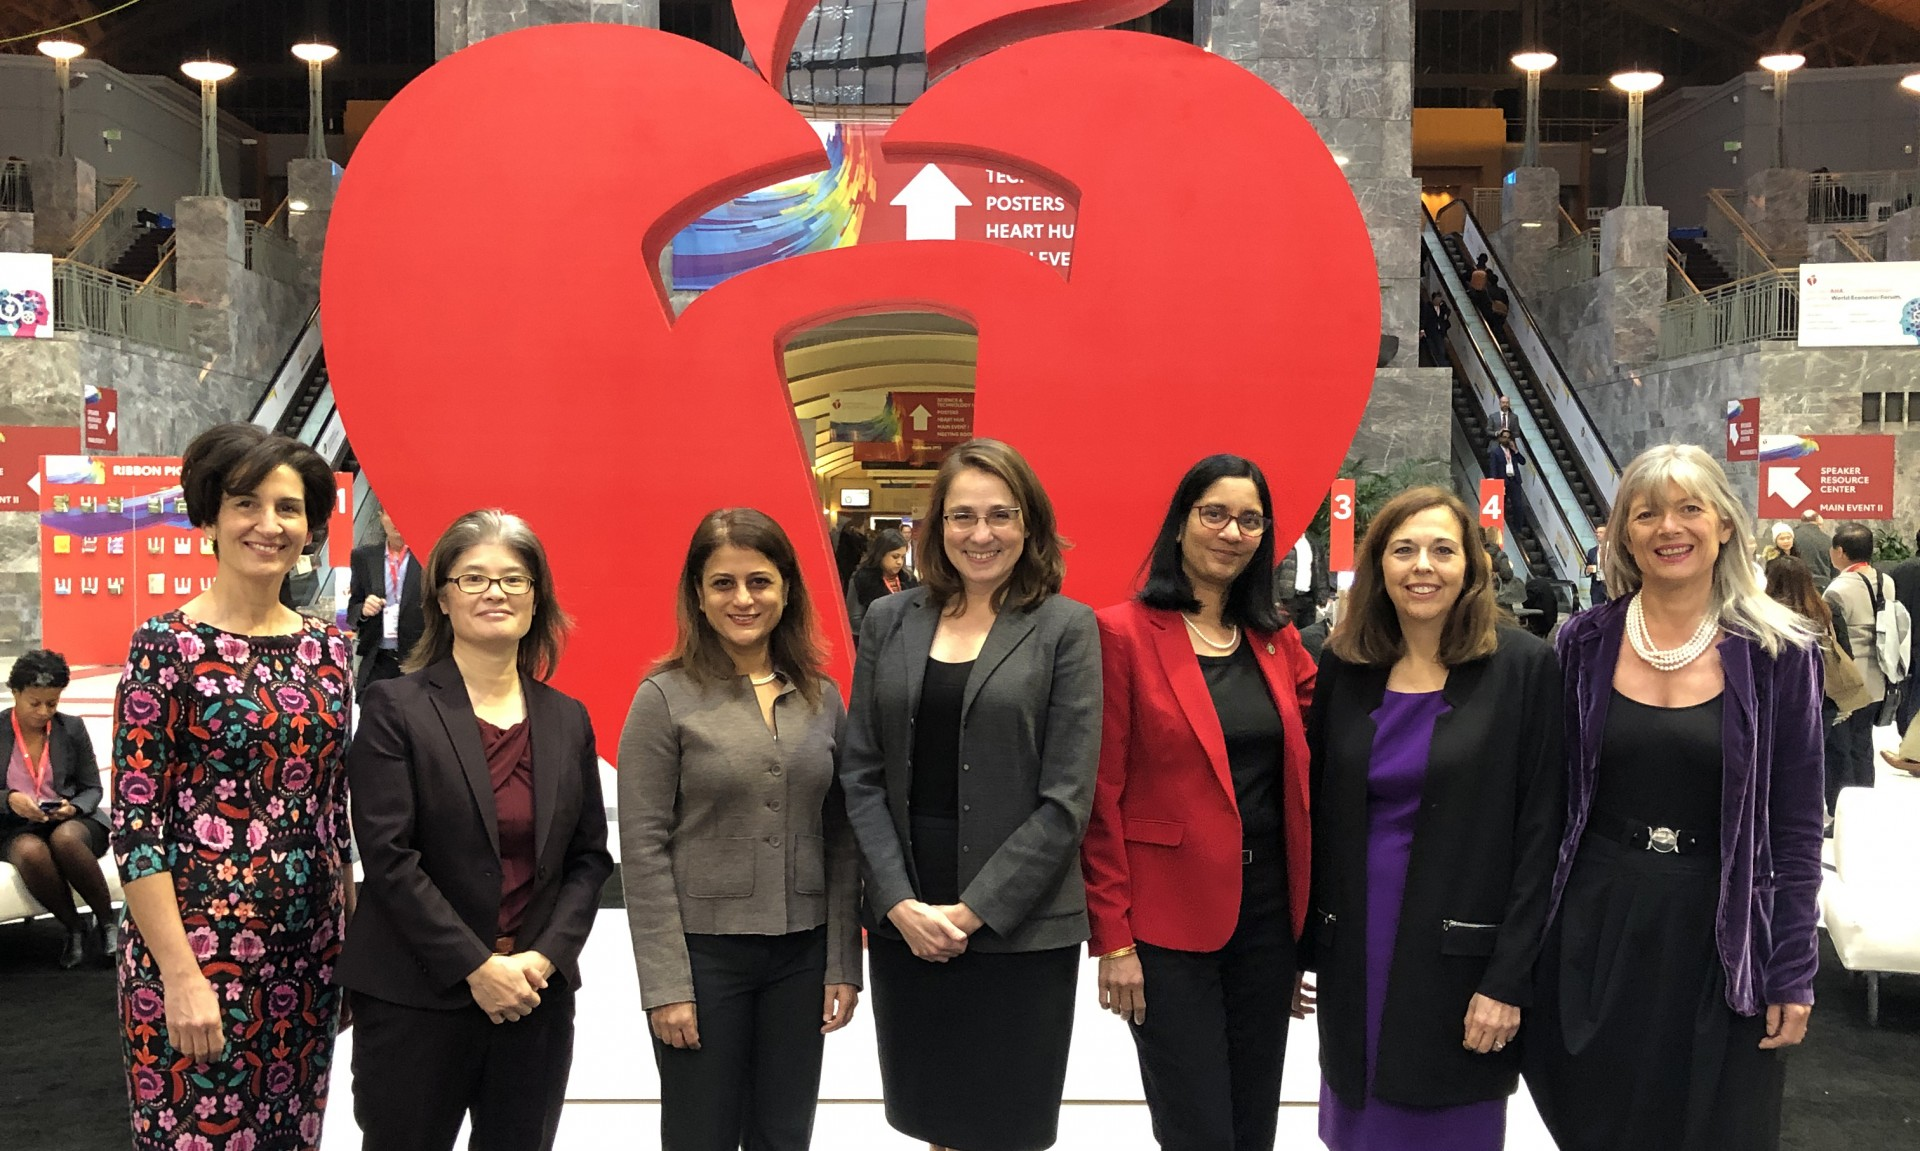 Women are leading many of the top cardiology groups. From left to right, Athena Poppas, MD; Judy Hung, MD; Maully Shah, MD; Christine Albert, MD, MPH; Sharmila Dorbala, MD, MPH; Andrea Russo, MD; Barbara Casadei, MD.  Photo courtesy of Philippe Bertrand, MD, PhD.